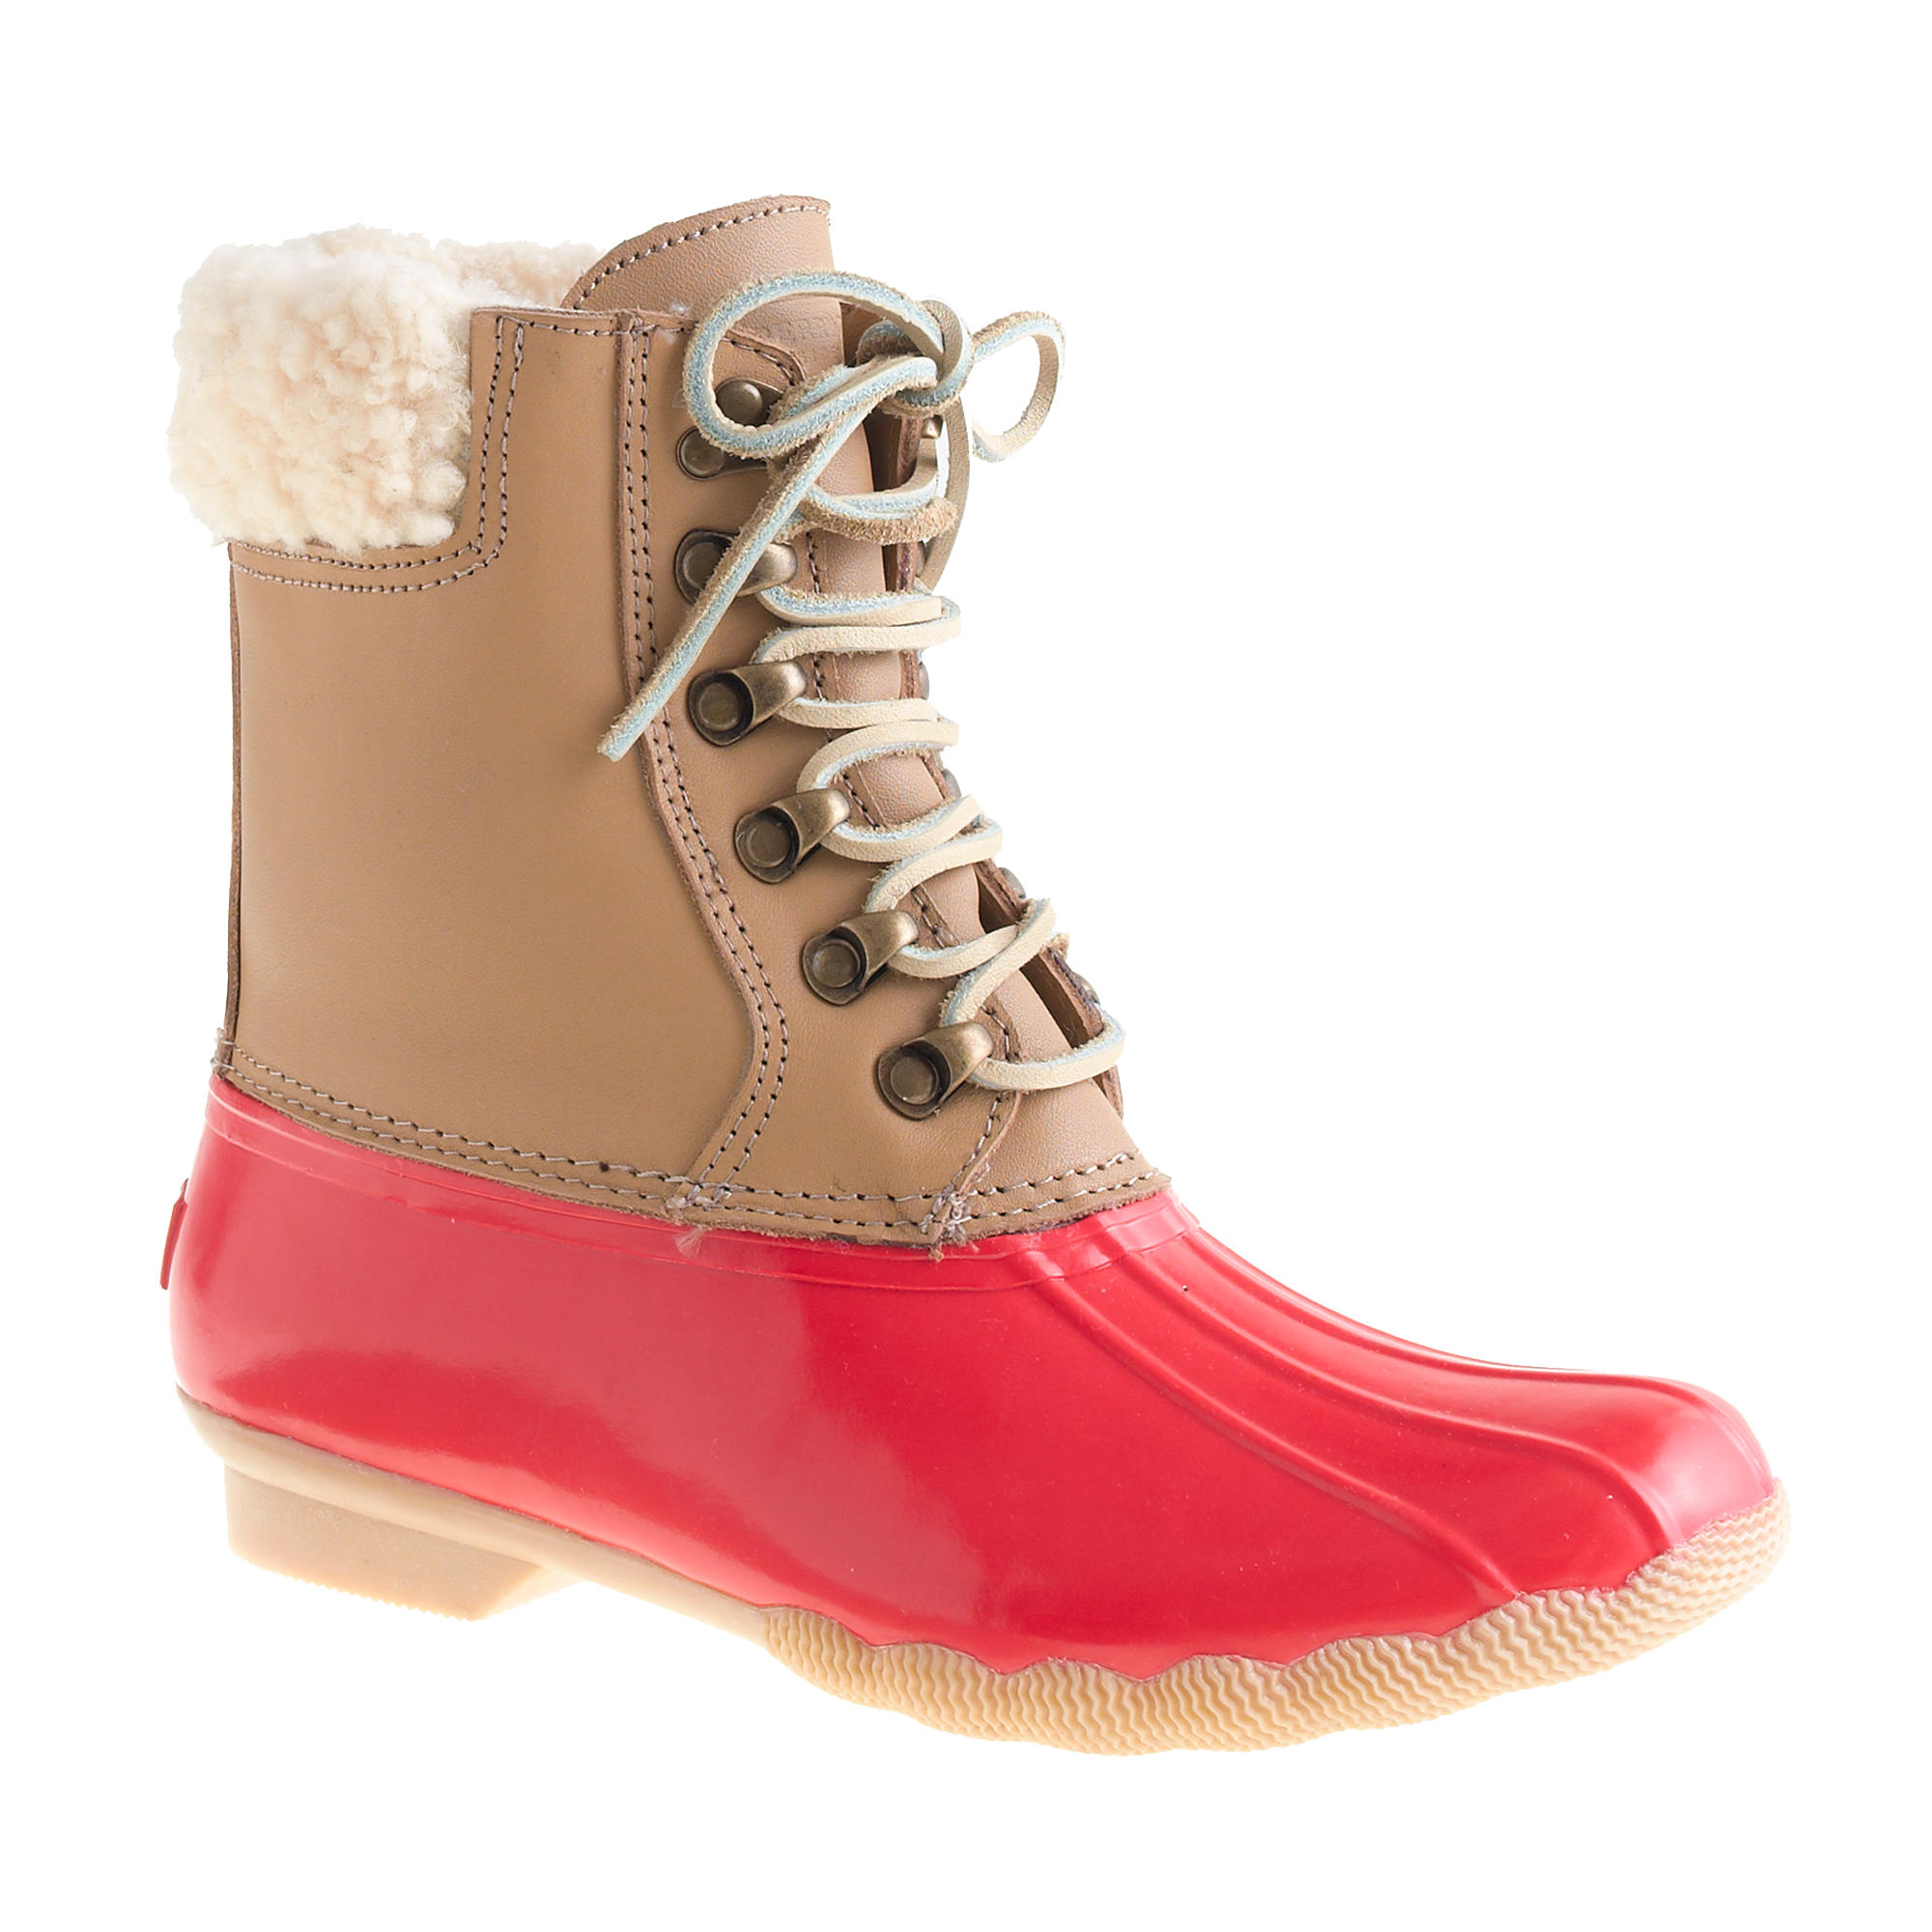 Simple Sperry Ladies Saltwater Quilted Duck Boots - Red